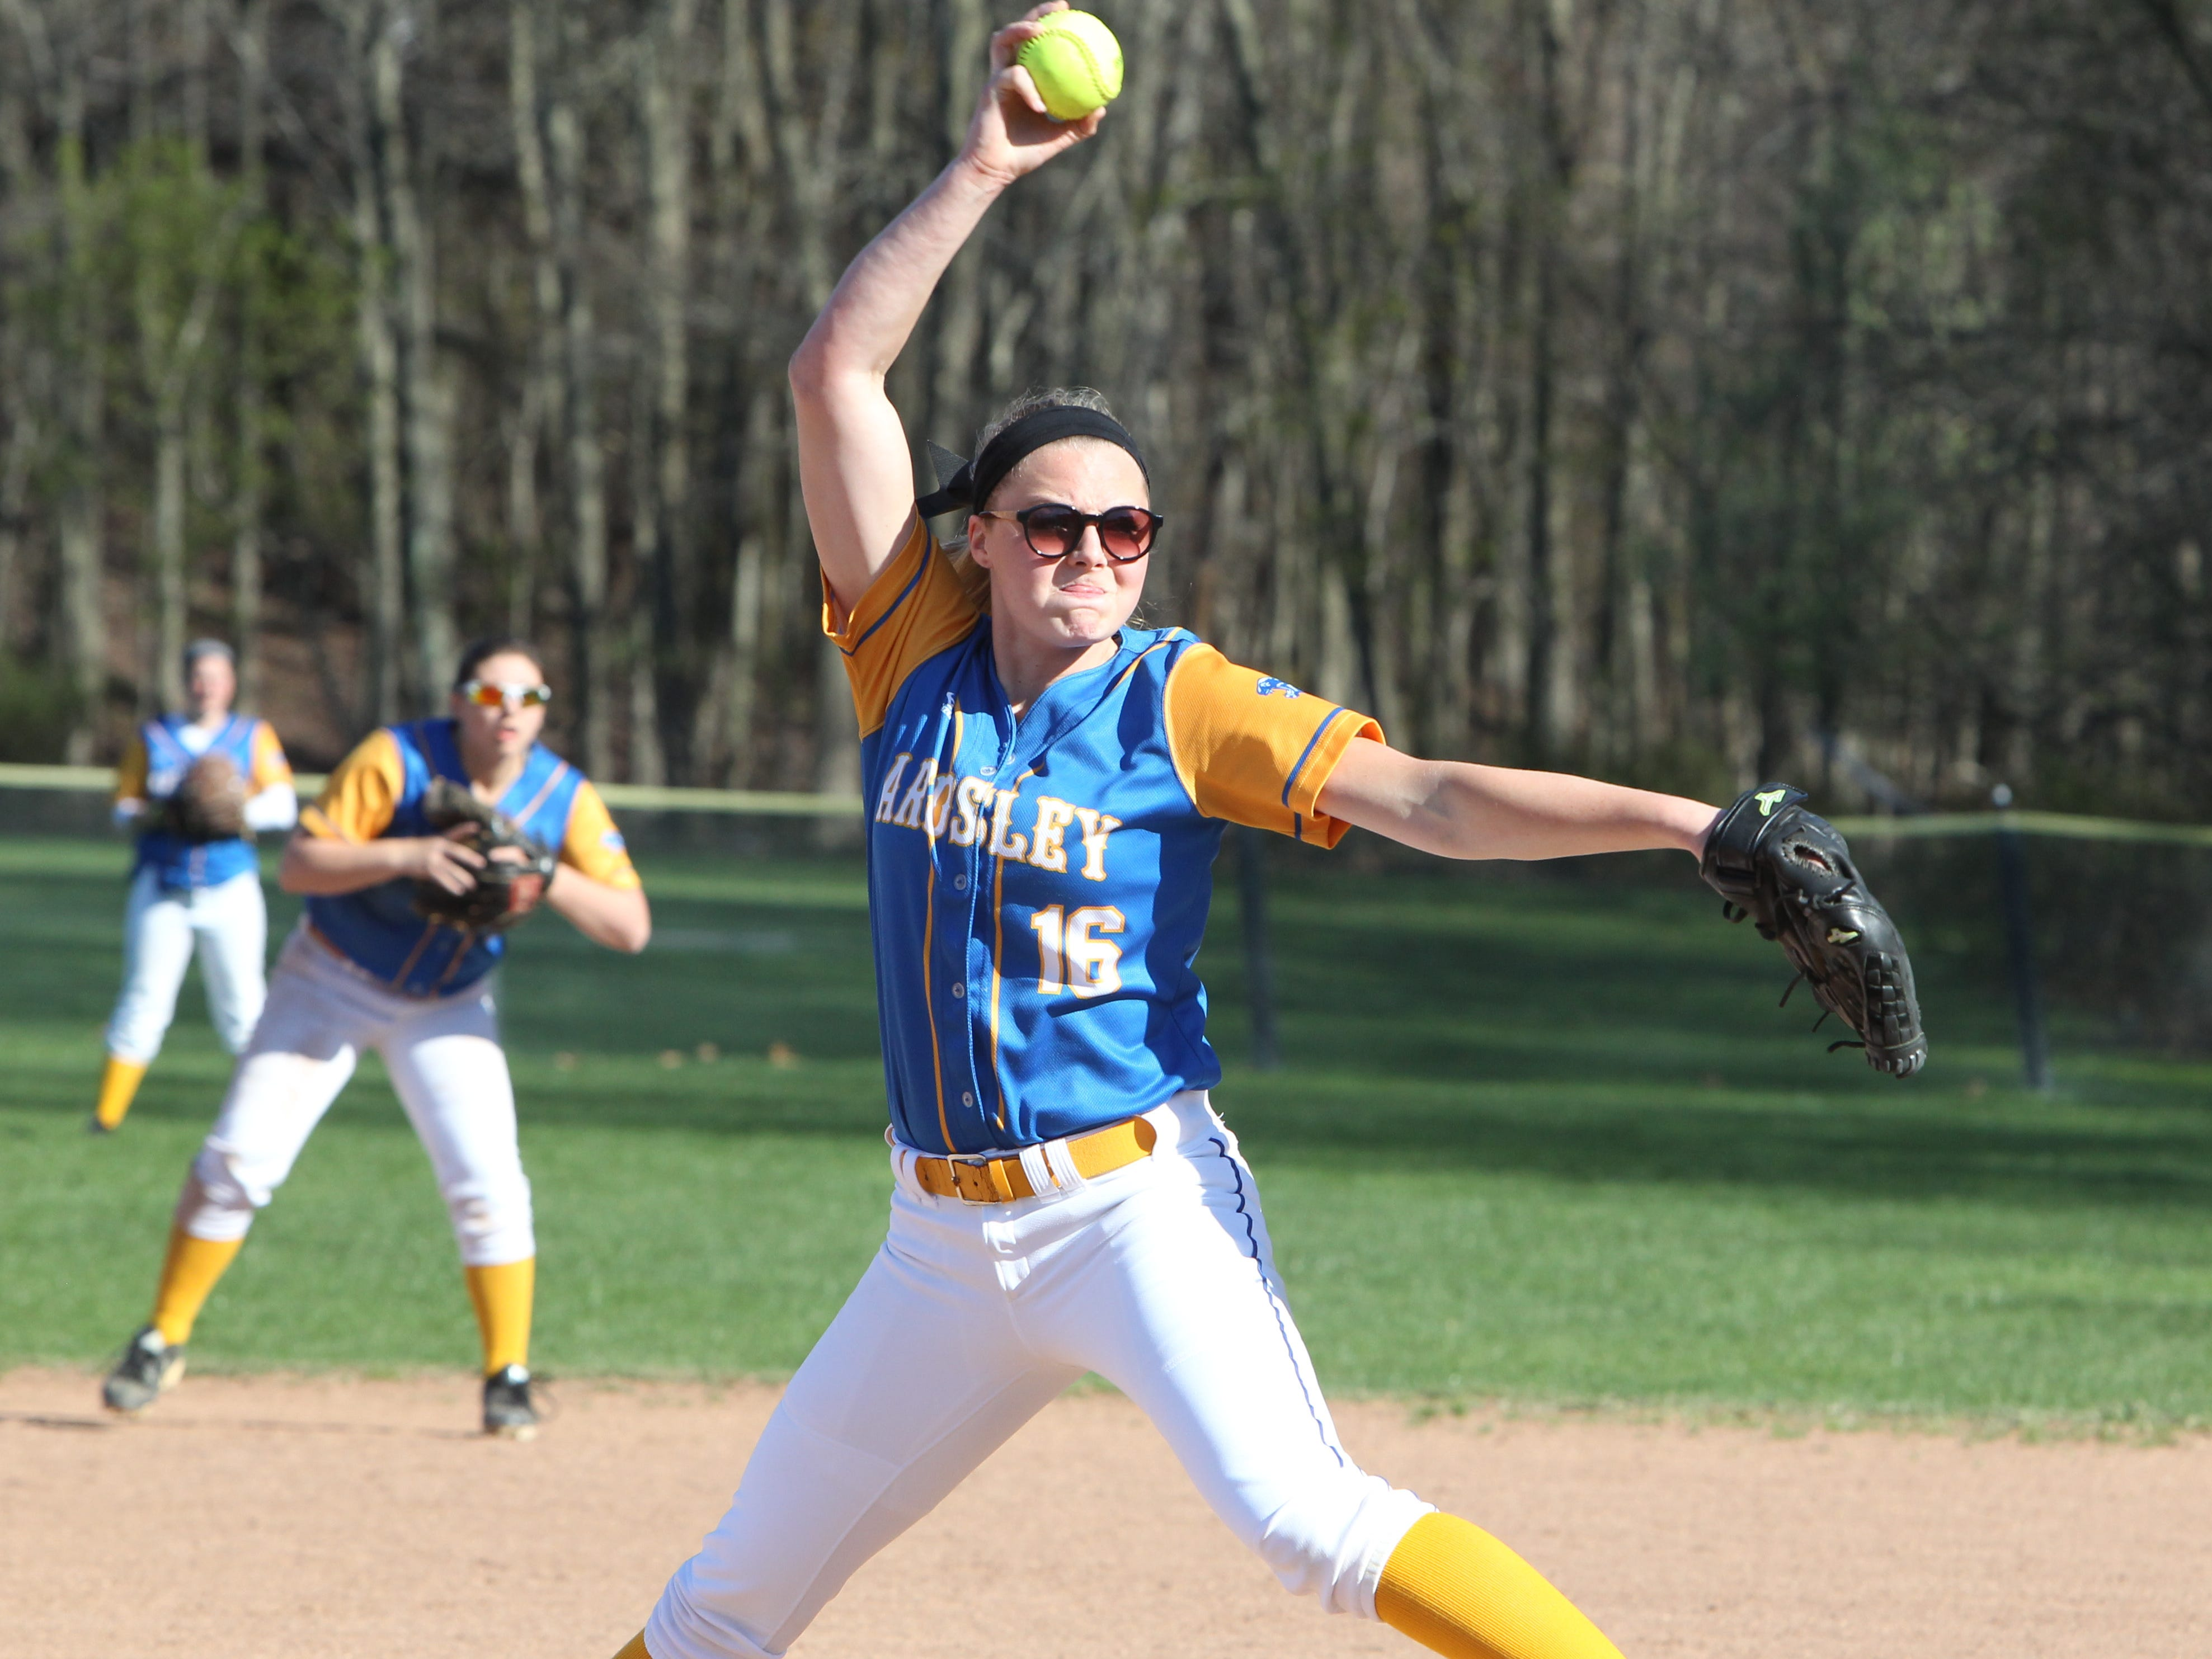 Ardsley pitcher Raina Gorman delivers a pitch during a game at Rye Neck April 28, 2015. Ardsley won 1-0.